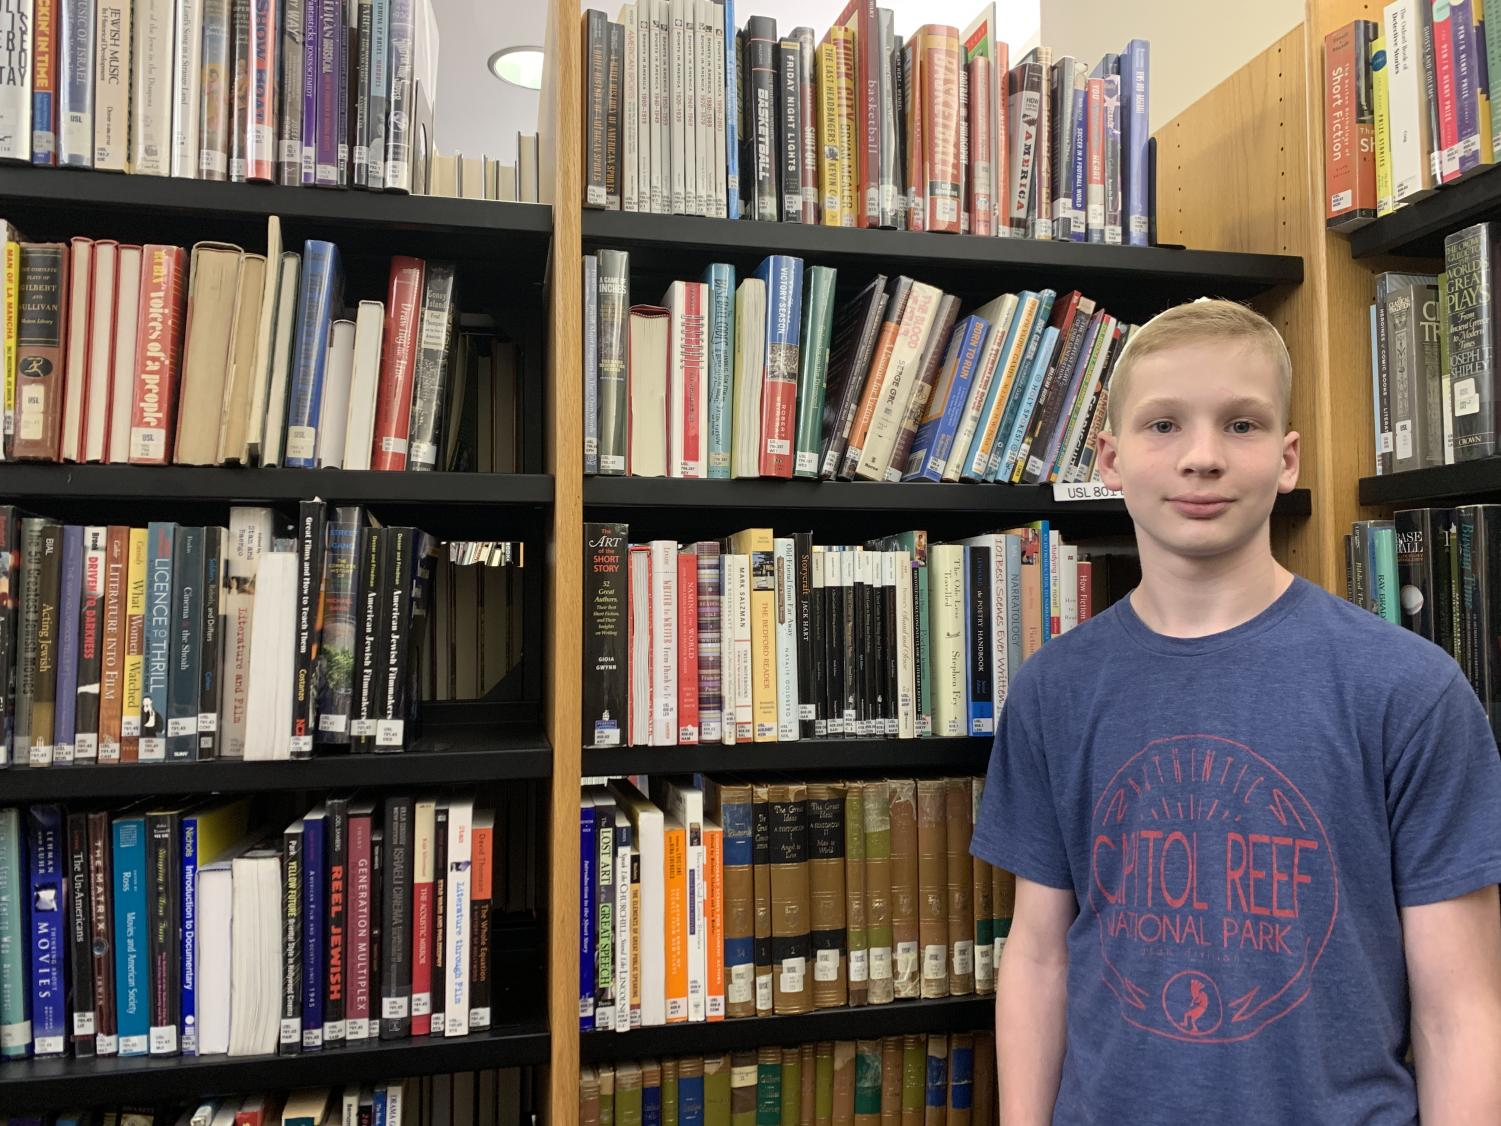 """Seventh-grader Sean Levitan, the """"Poem In Your Pocket Game"""" champion, was awarded with a 40 dollar Barnes and Noble gift certificate and two """"rhyming prizes"""" that were based on rhyming words. Levitan won because he was the only middle schooler remaining when the game ended due to time constraints."""